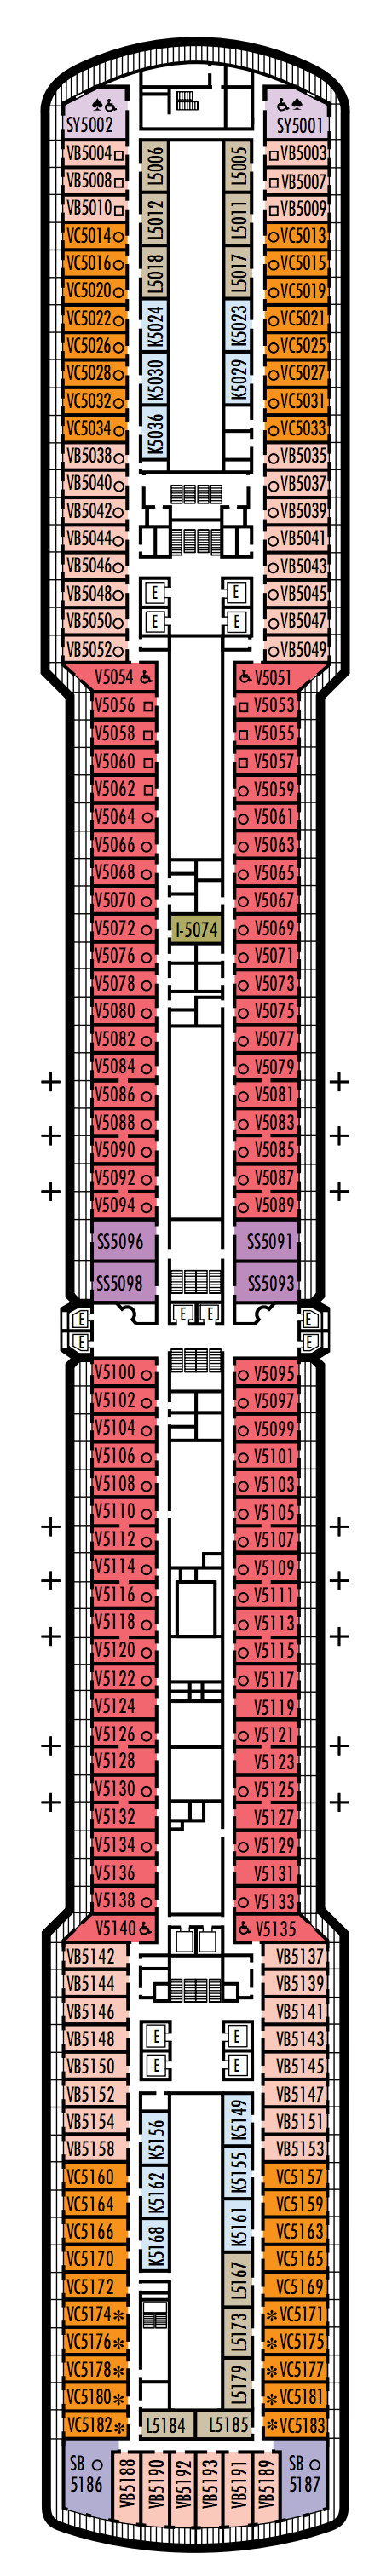 Eurodam Deck 5 - Verandah Deck layout